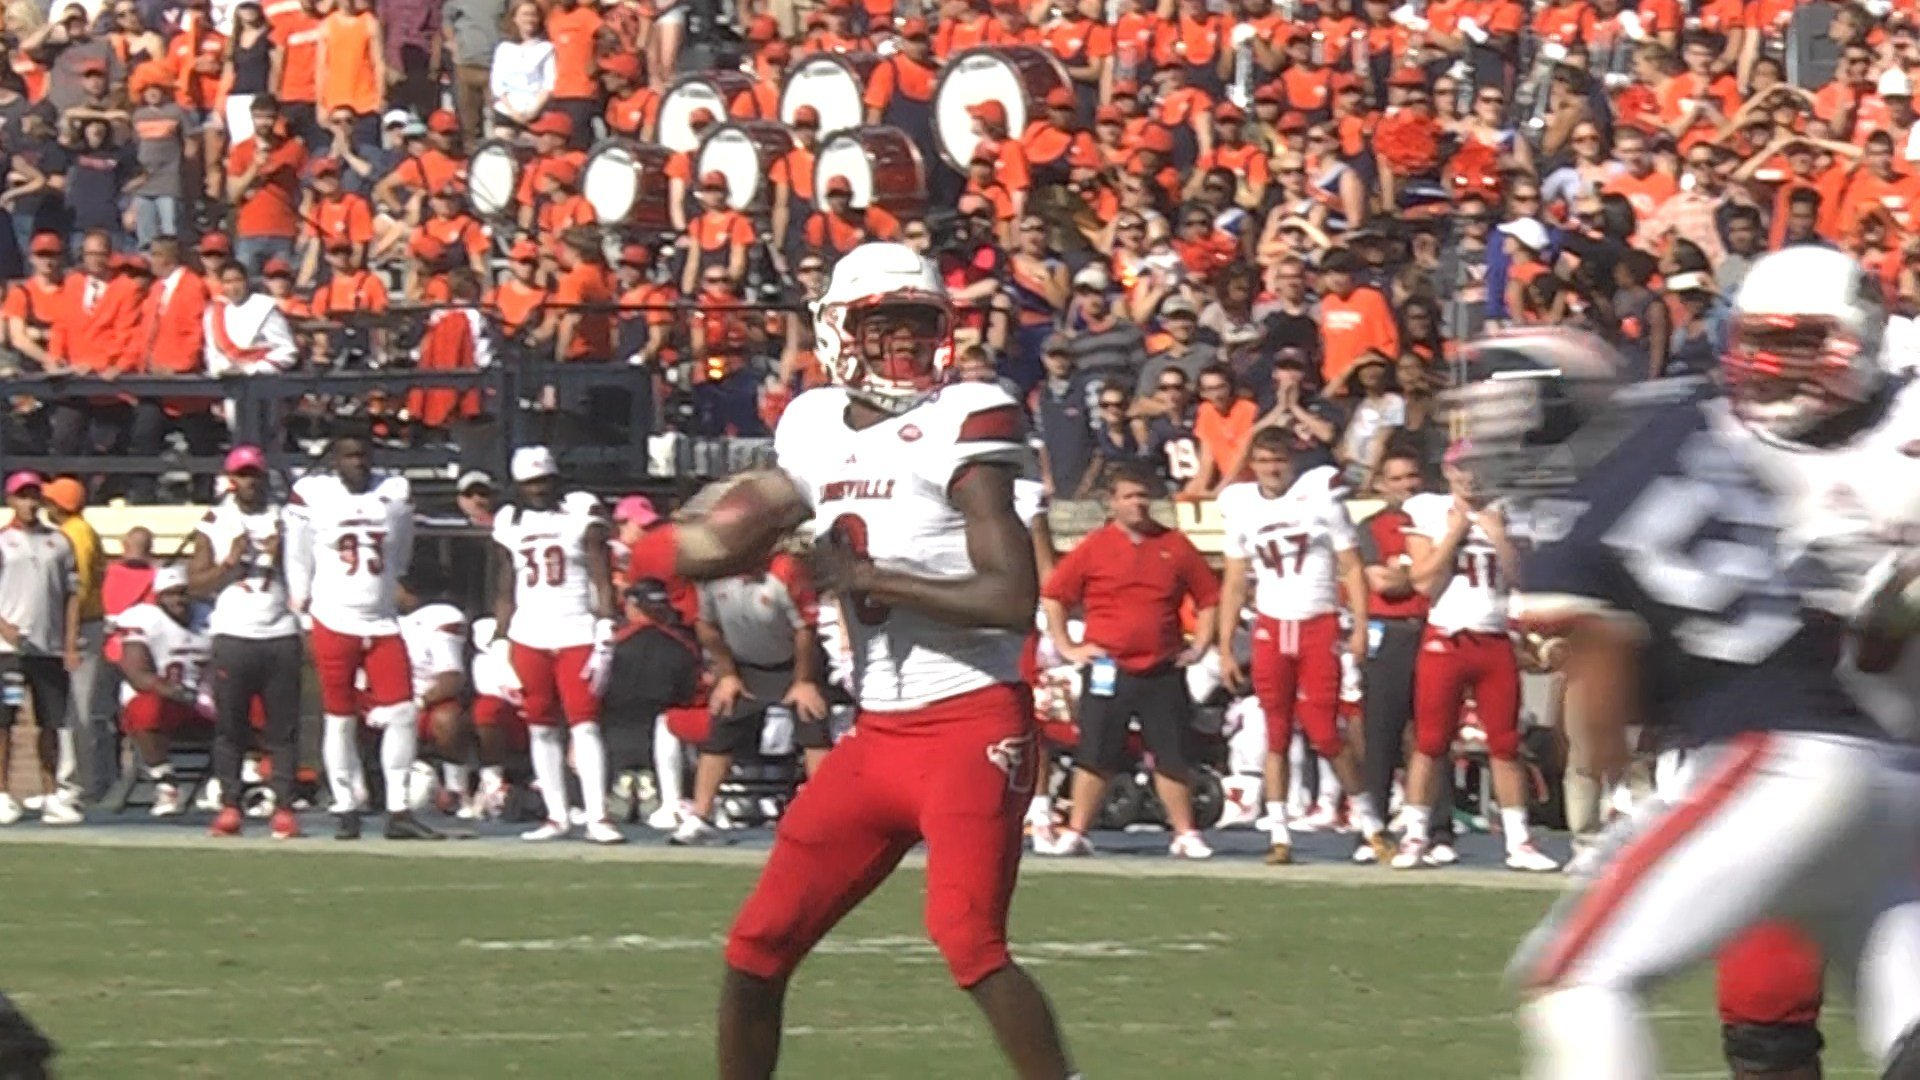 Lamar Jackson had four touchdowns passes in the win against Virginia in 2016